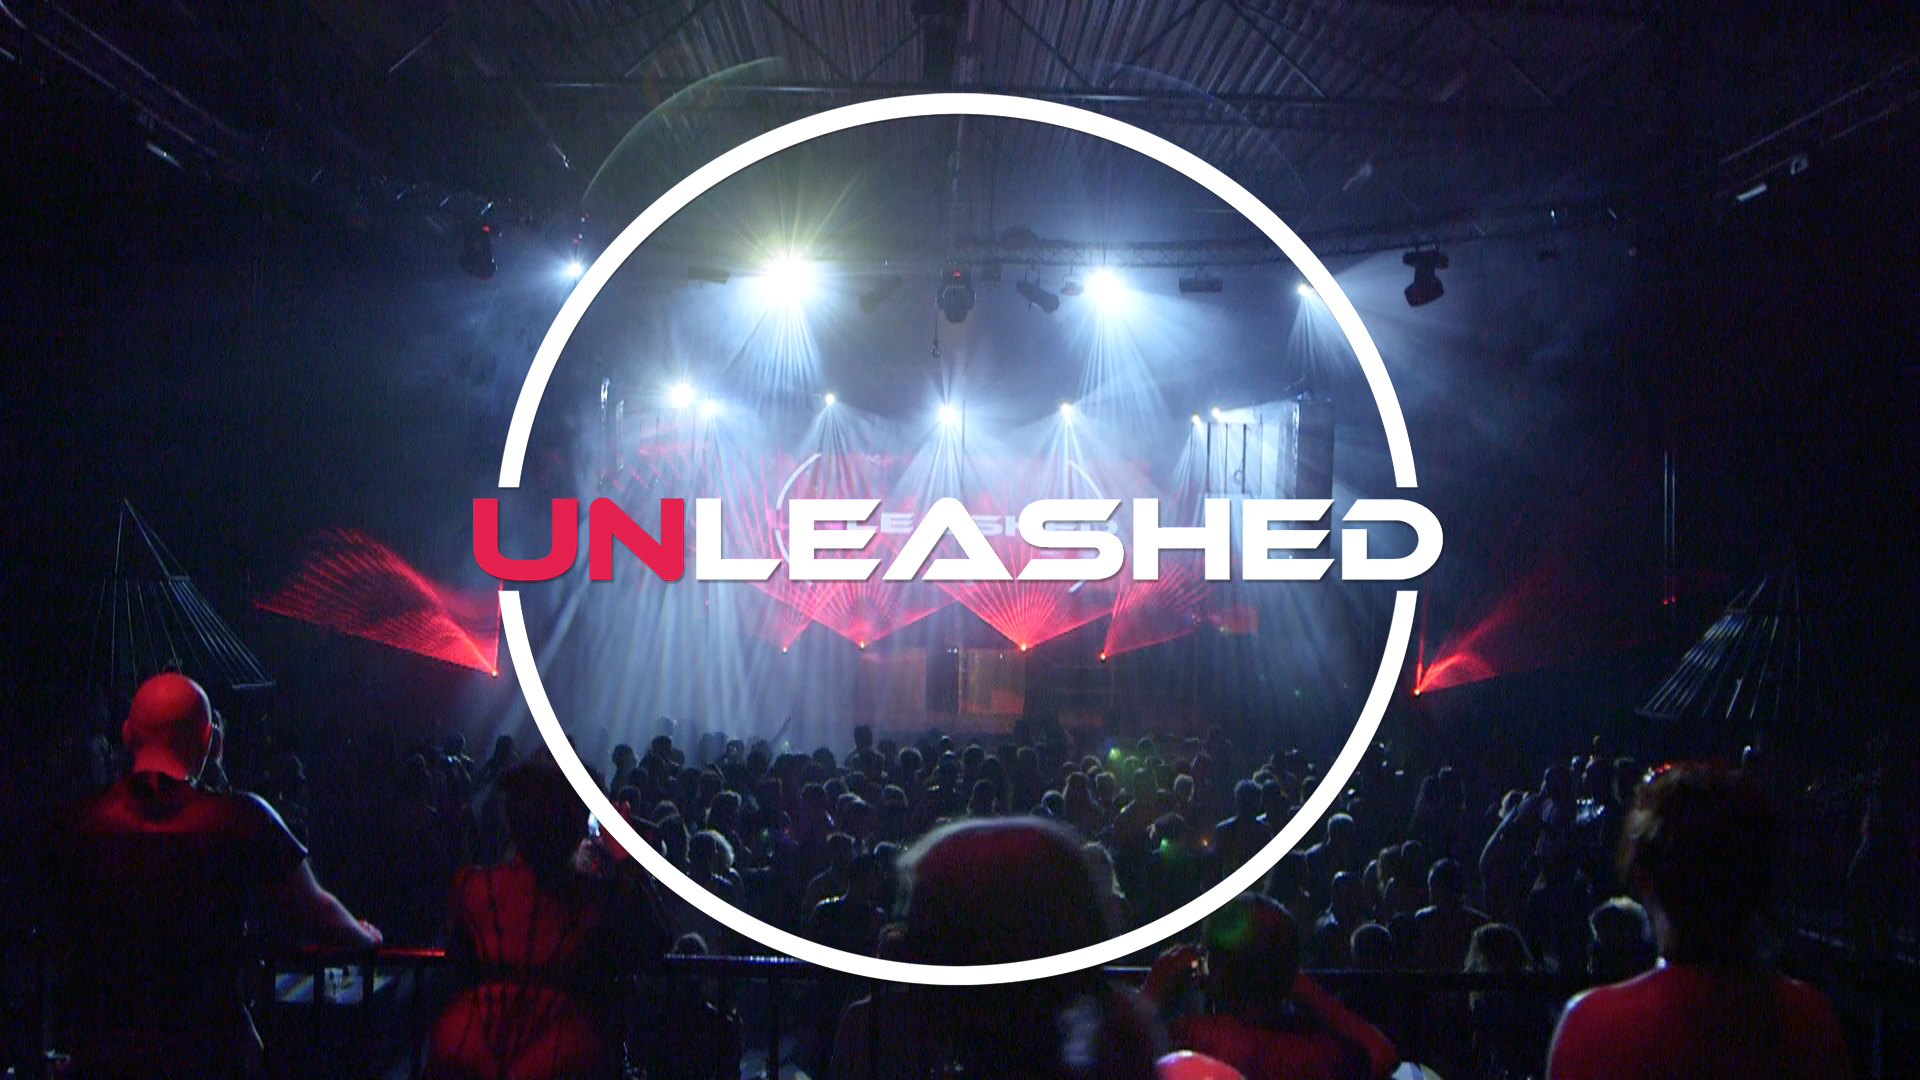 Watch UNLEASHED Promo Video – When Fetish Hits The Dance Floor!